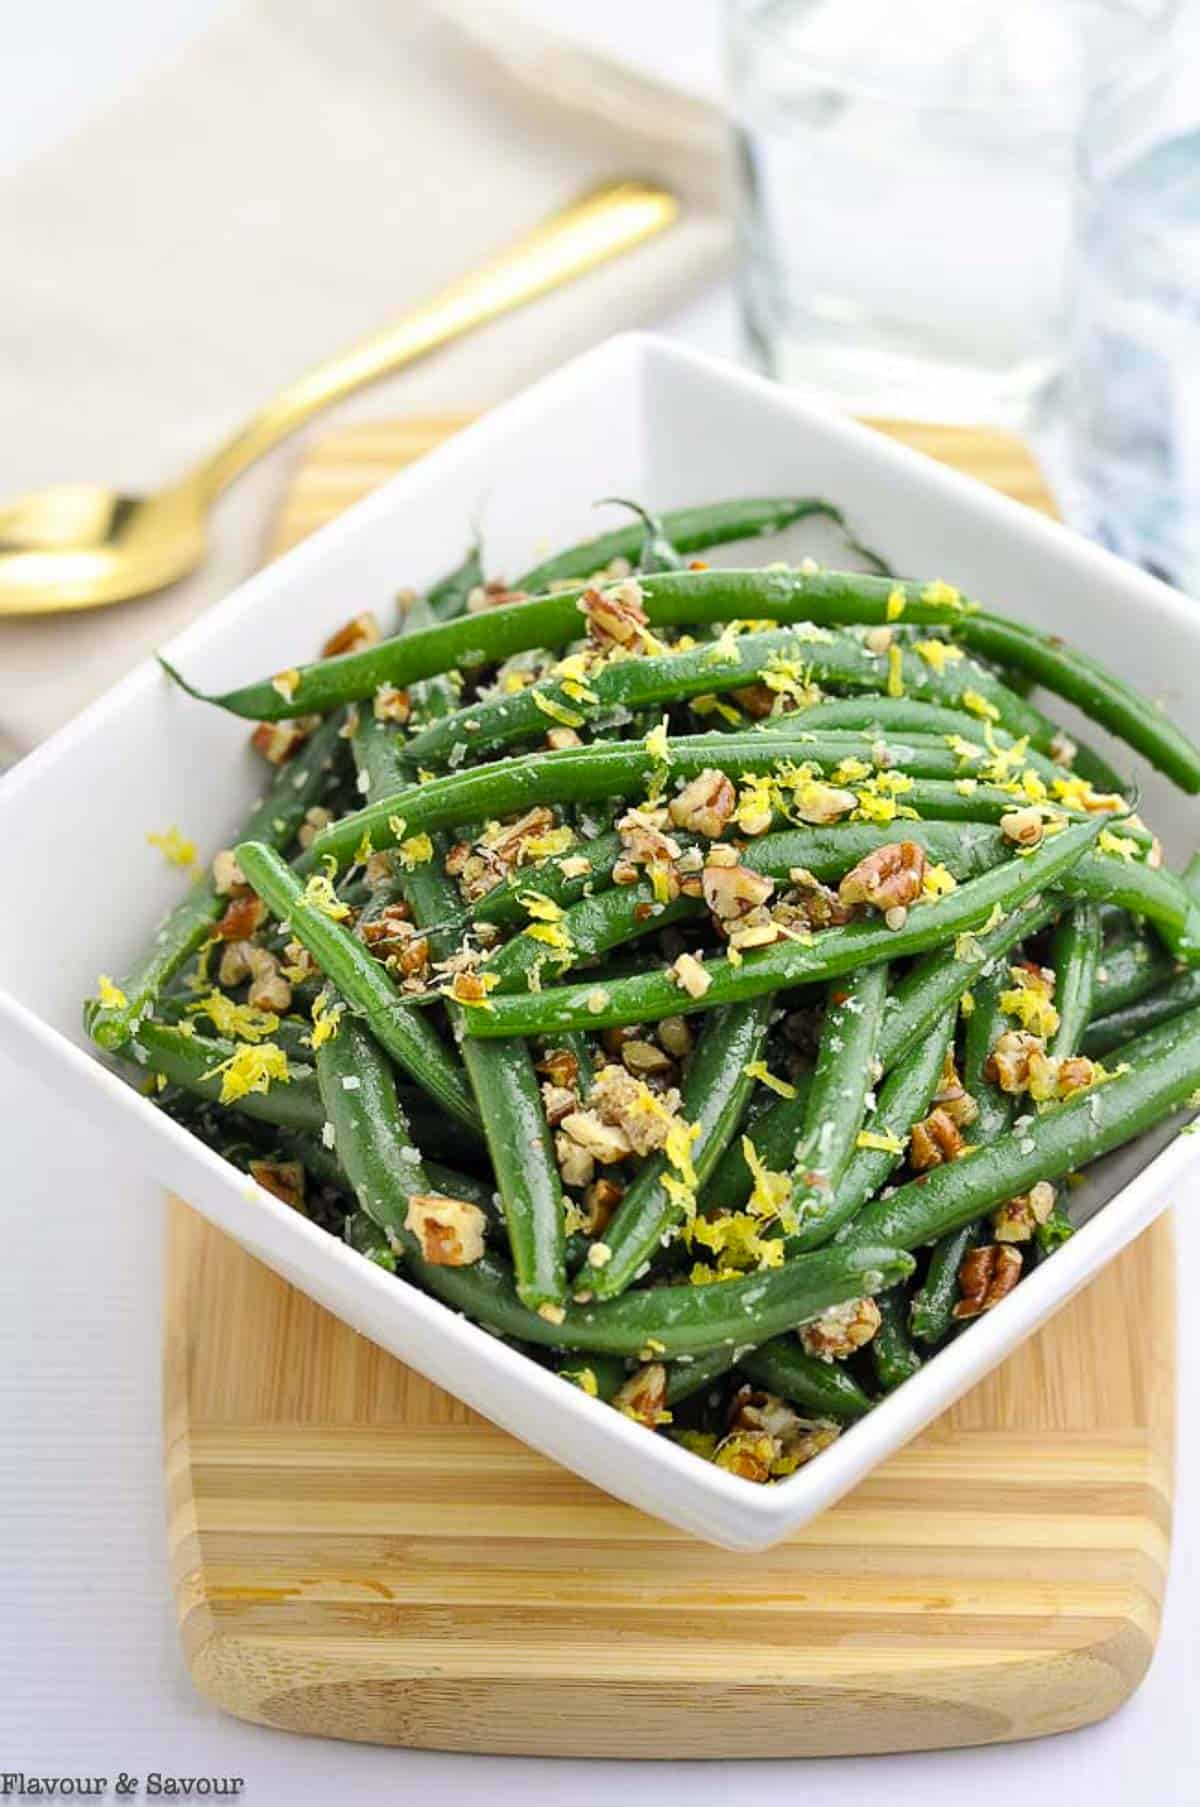 A square bowl of green beans garnished with pecans and Parmesan cheese.